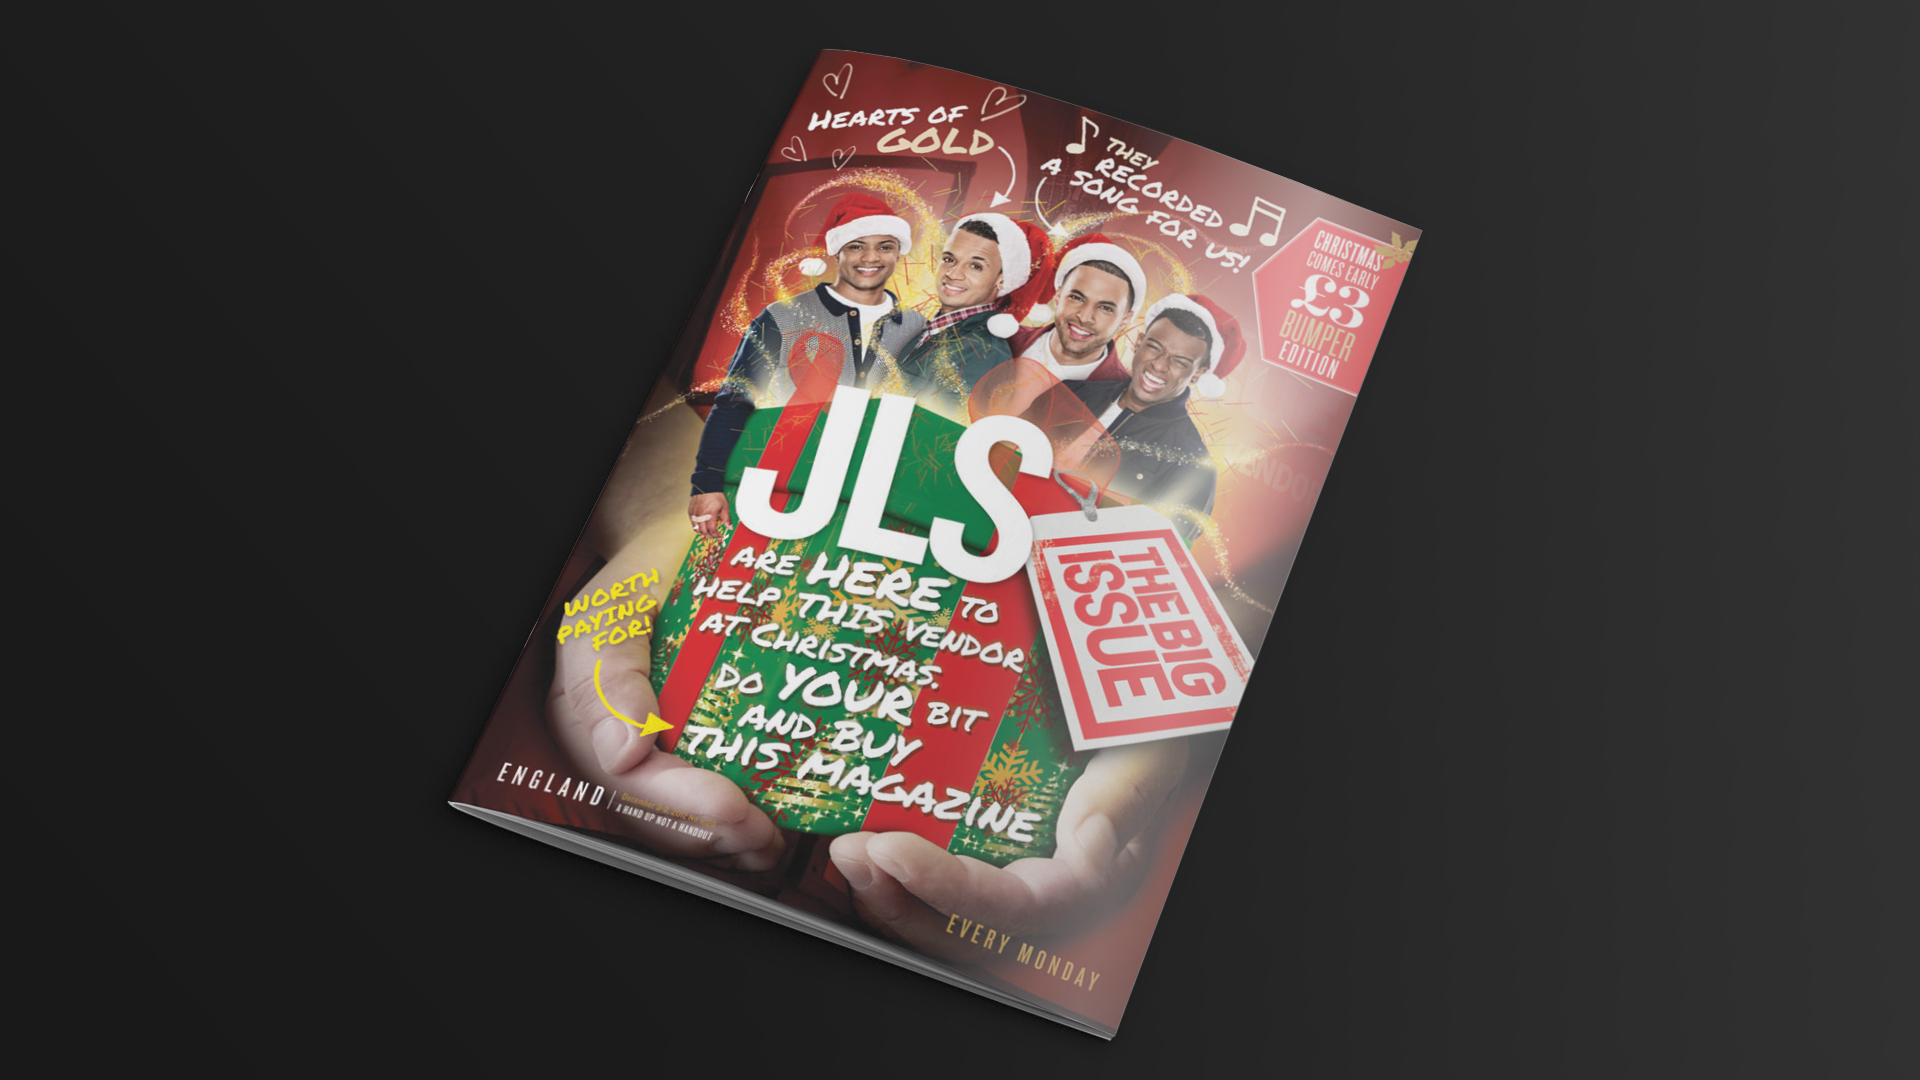 COVER-TBI-JLS-1920px